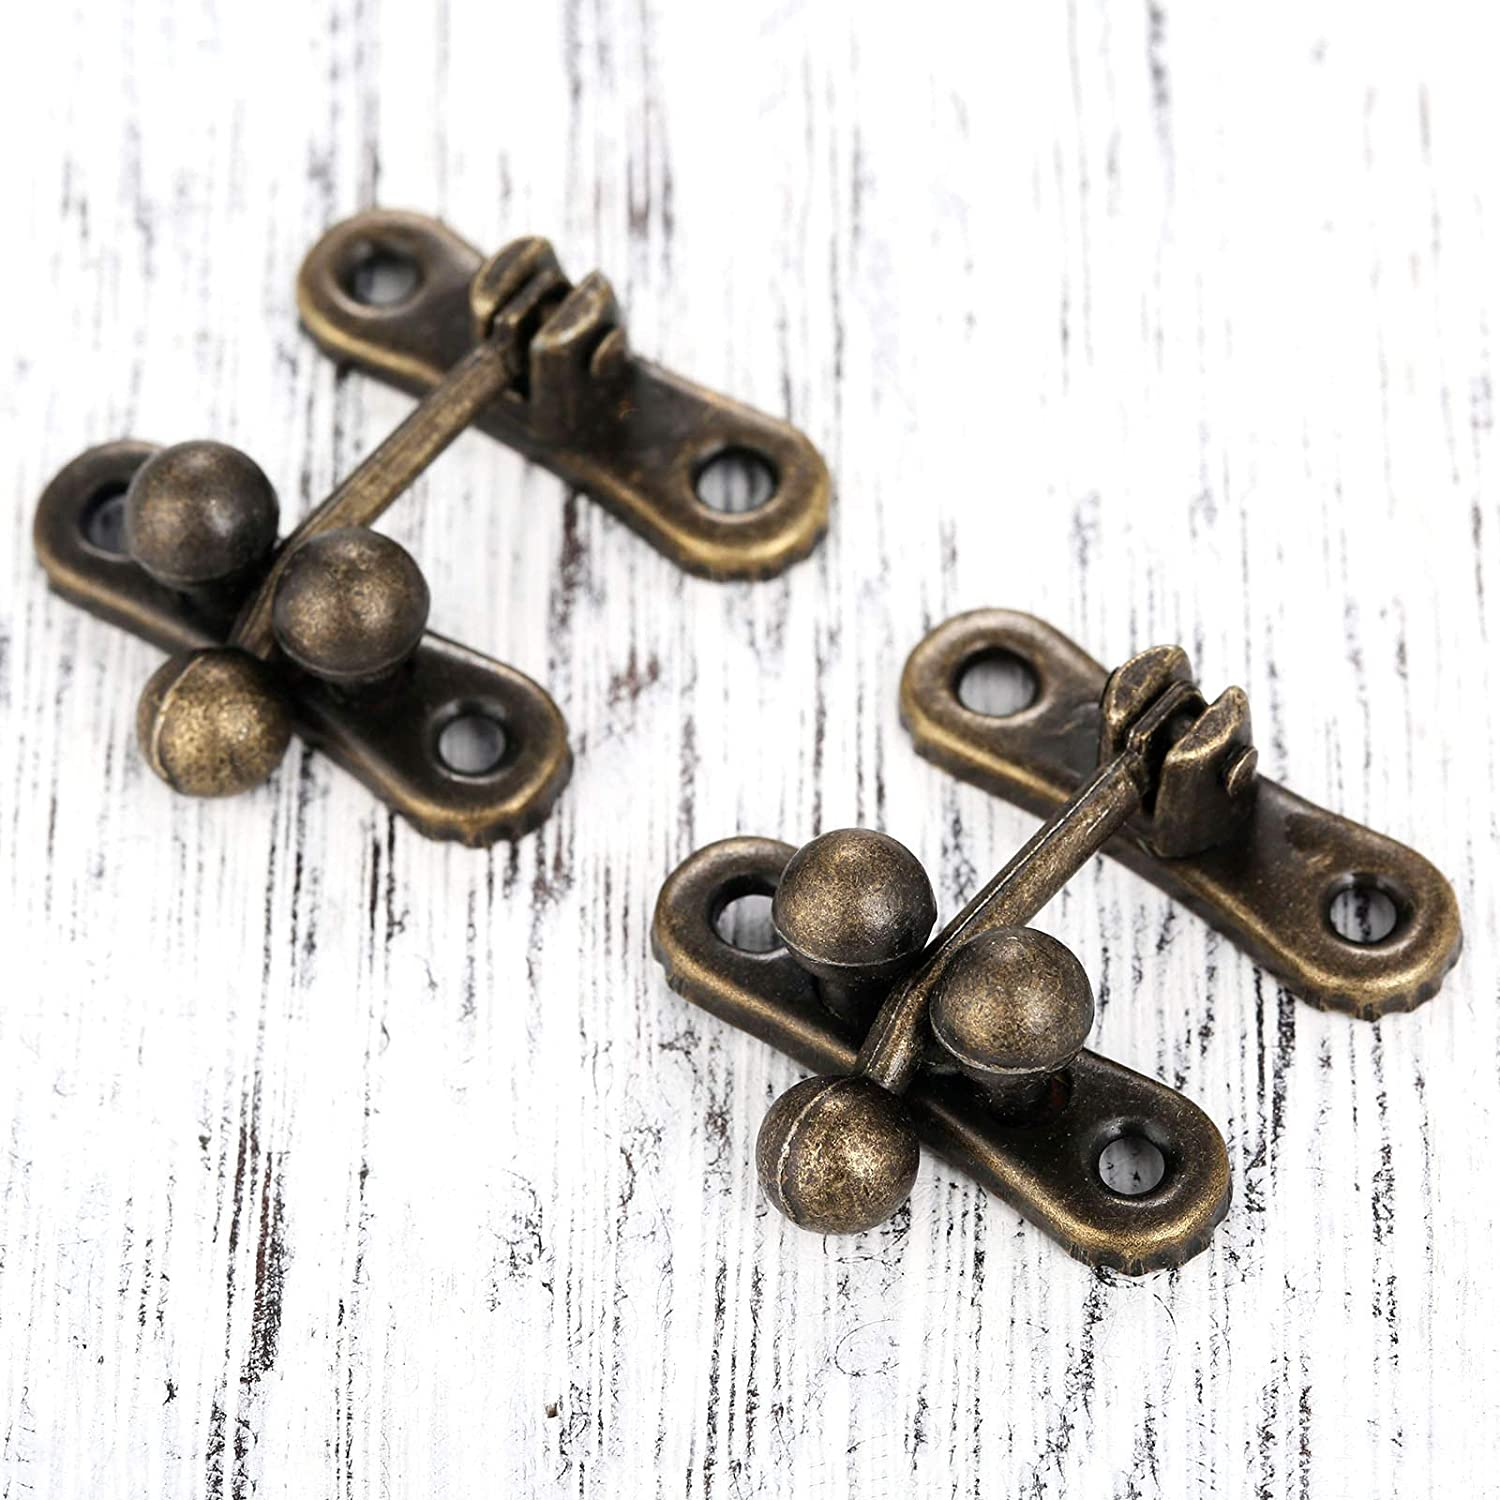 5 Sets Antique Brass Latch Hasps Decorative Bronze Vintage Locks with Screws for Jewelry Case Wooden Boxes Length Width: 1-5//161-1//4